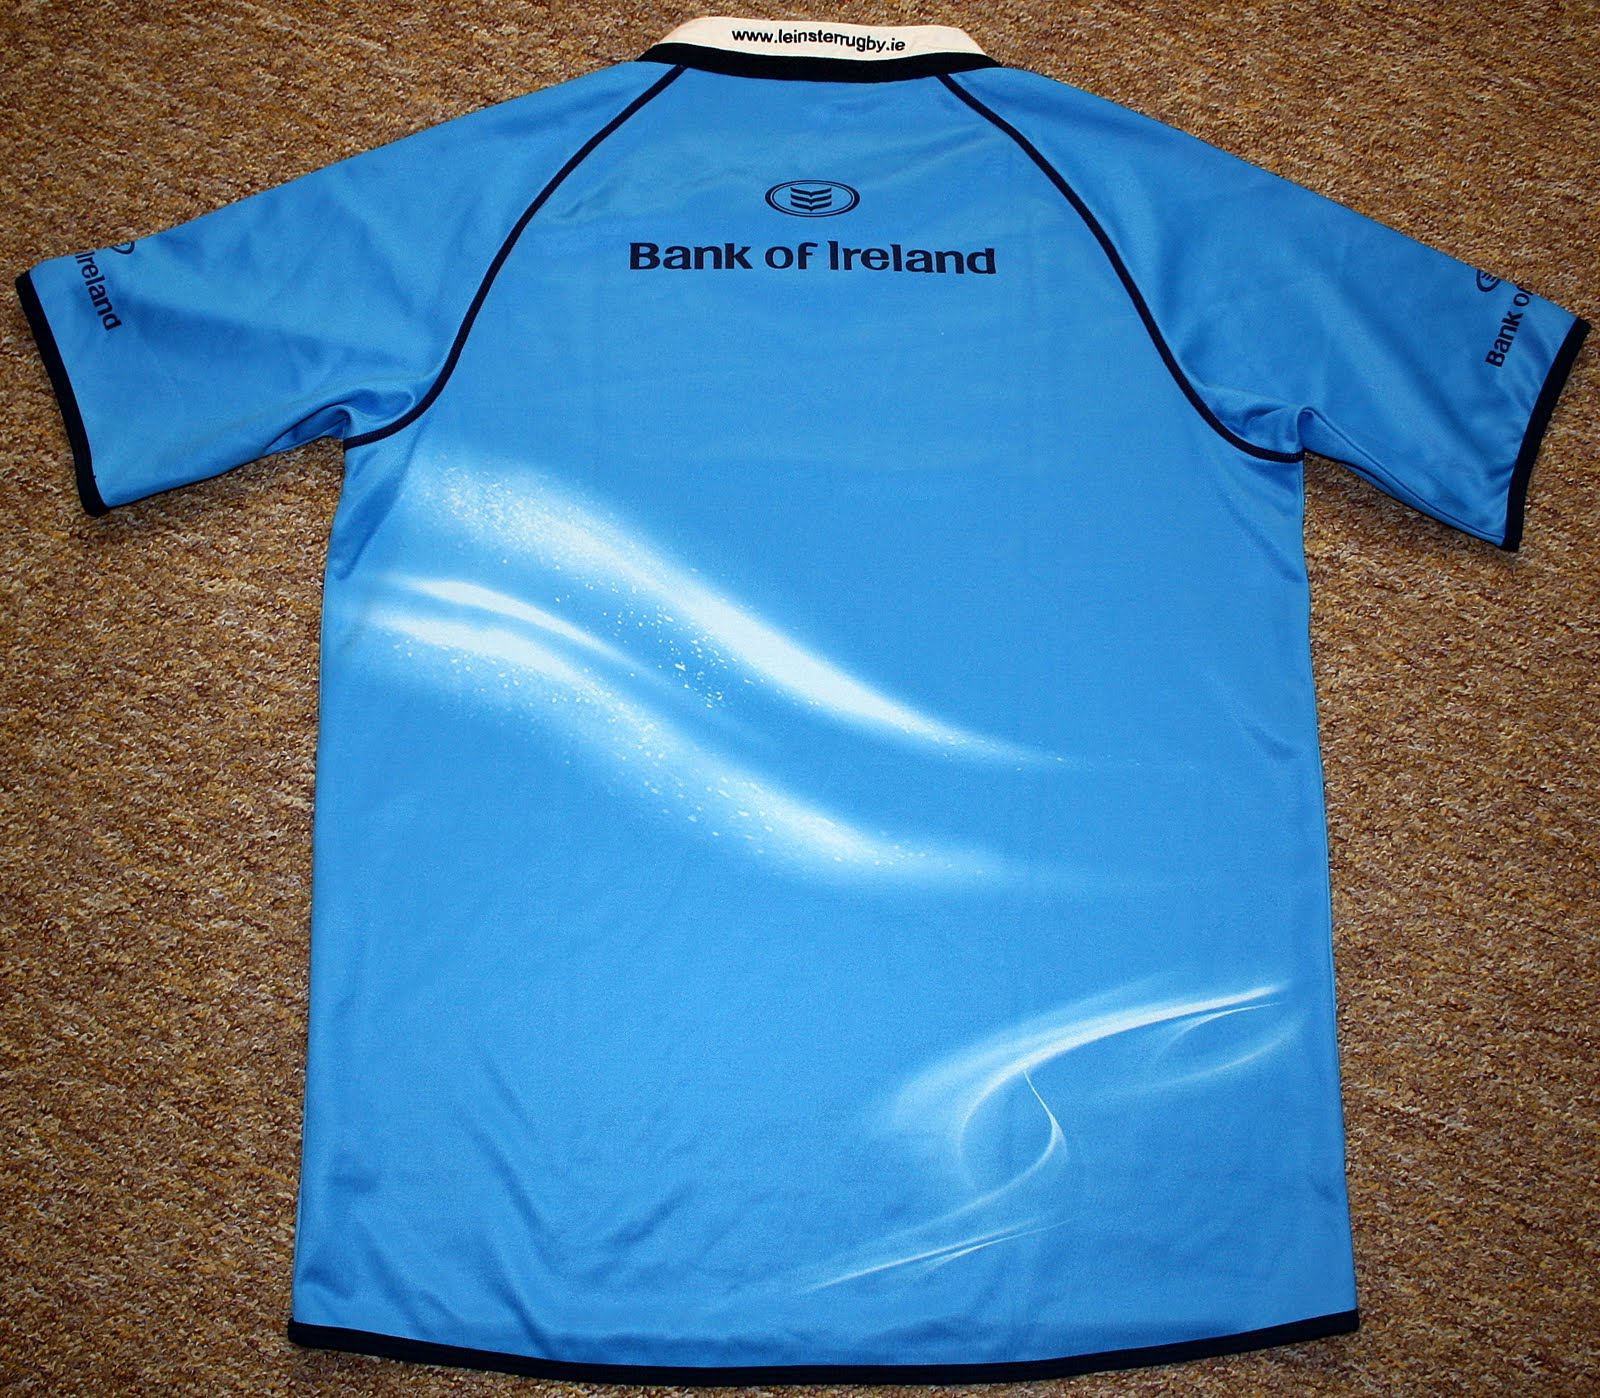 75163547bcf Leinster SS Pro Away 2009/2010 Rugby Jersey made by Canterbury. Official  rugby jersey released for 2009/2010 Magners league season. Canterbury,  Leinster ...